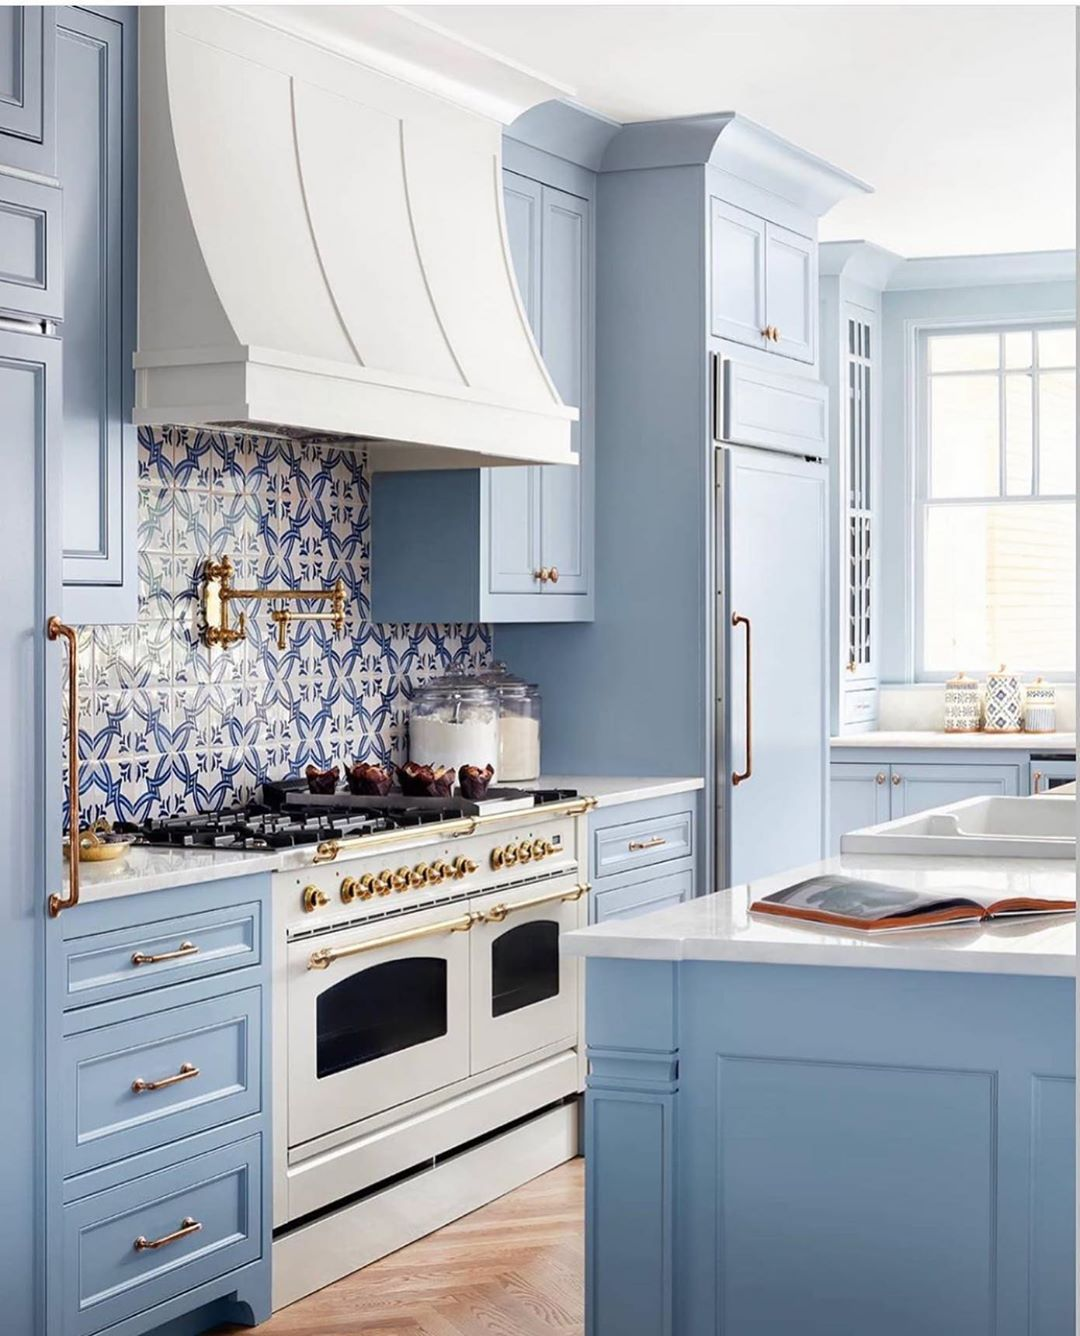 This Kitchen Is So Bright And Beautiful We Cant Help But Smile Classic White Kitchen Kitchen Inspirations Blue Kitchens